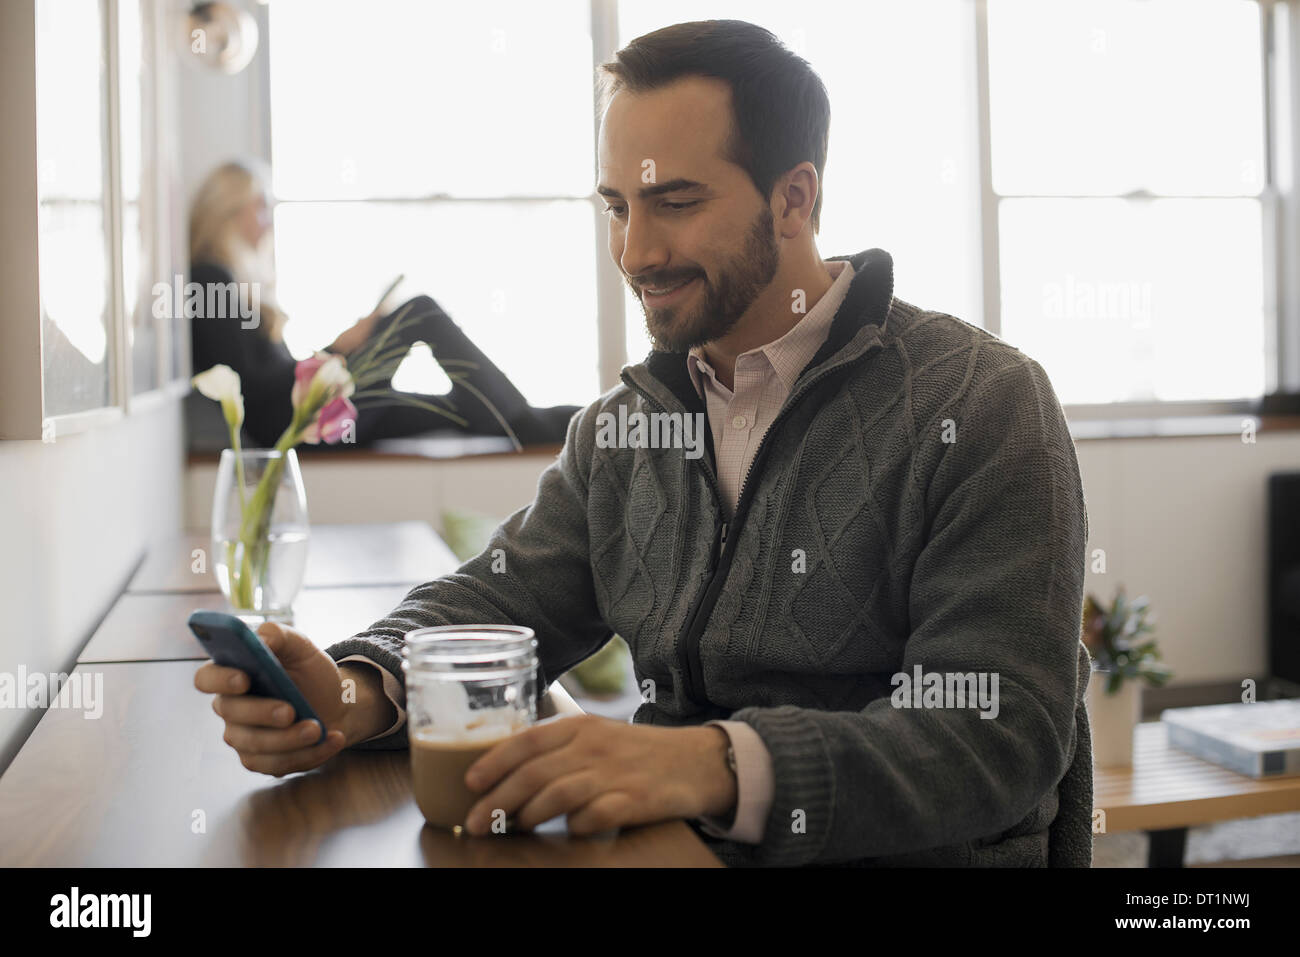 Couple Relaxing at Home with Laptop and E-Reader - Stock Image